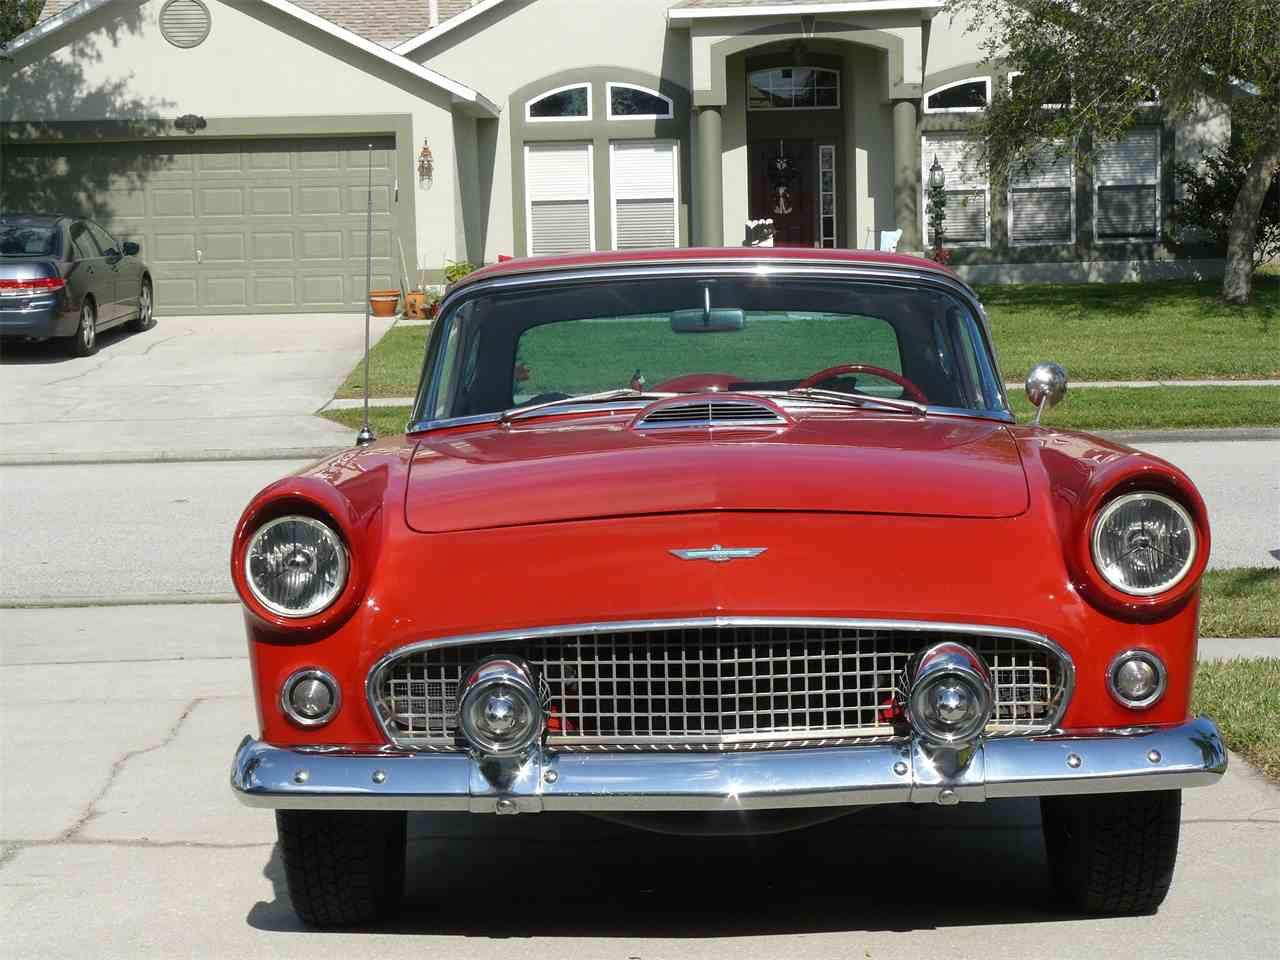 Large Picture of Classic 1956 Ford Thunderbird located in Malabar Florida - $25,000.00 - K4T1